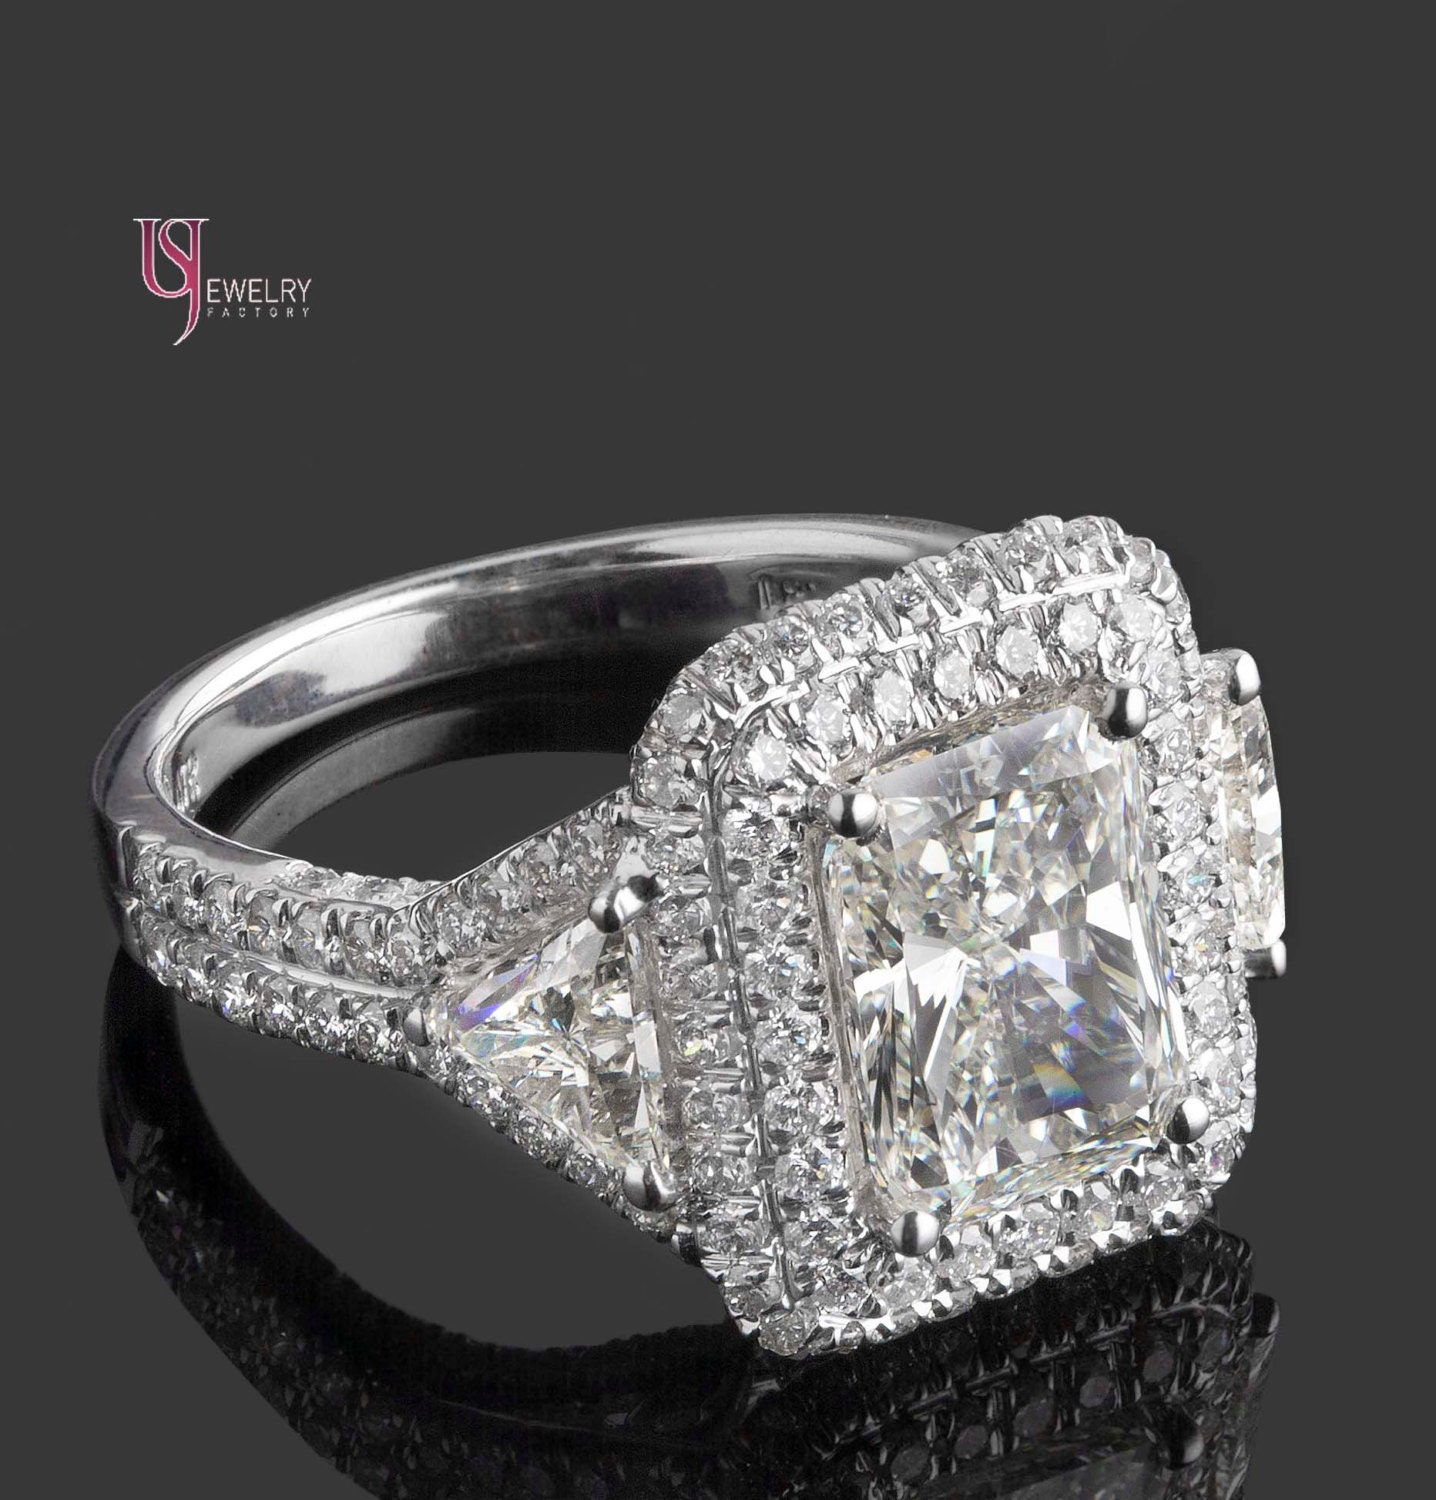 4.90 TCW Radiant Cut Diamond Engagement Ring With Trillion